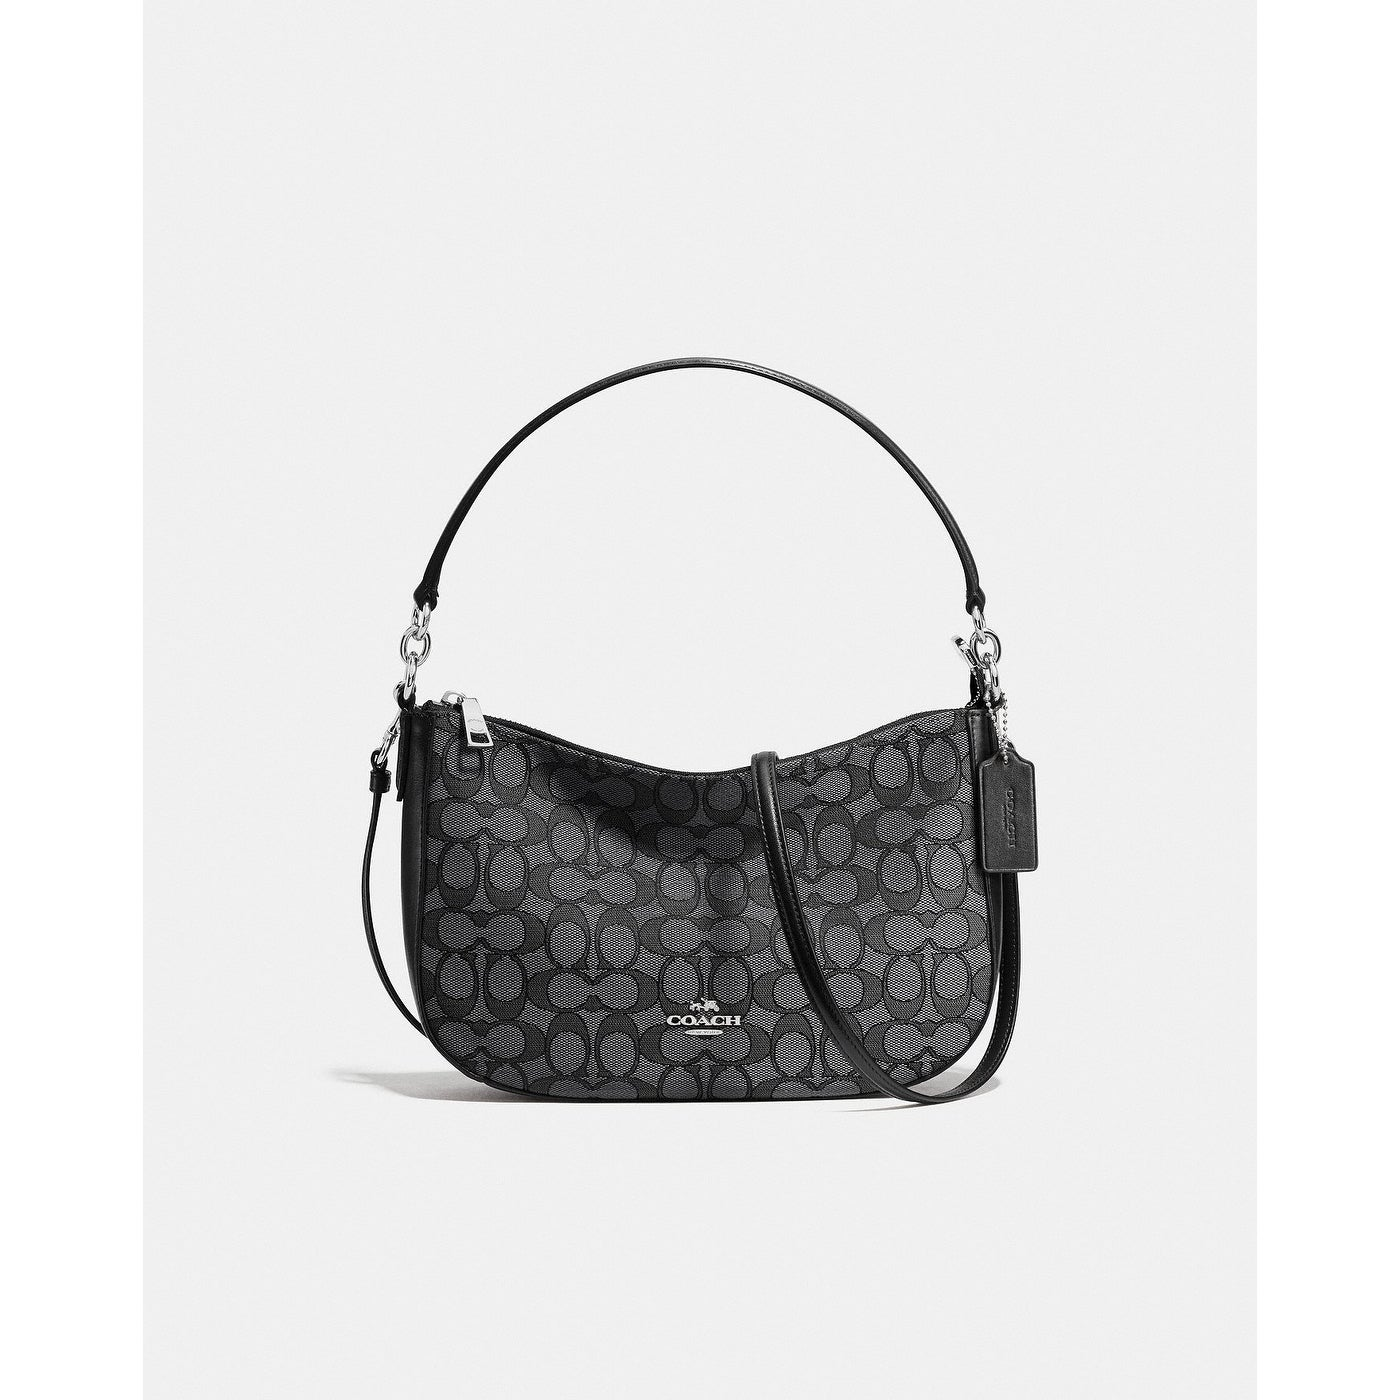 2c9206016 Shop Coach Chelsea Crossbody In Signature Jacquard Black Smoke - Free  Shipping Today - Overstock - 25628666